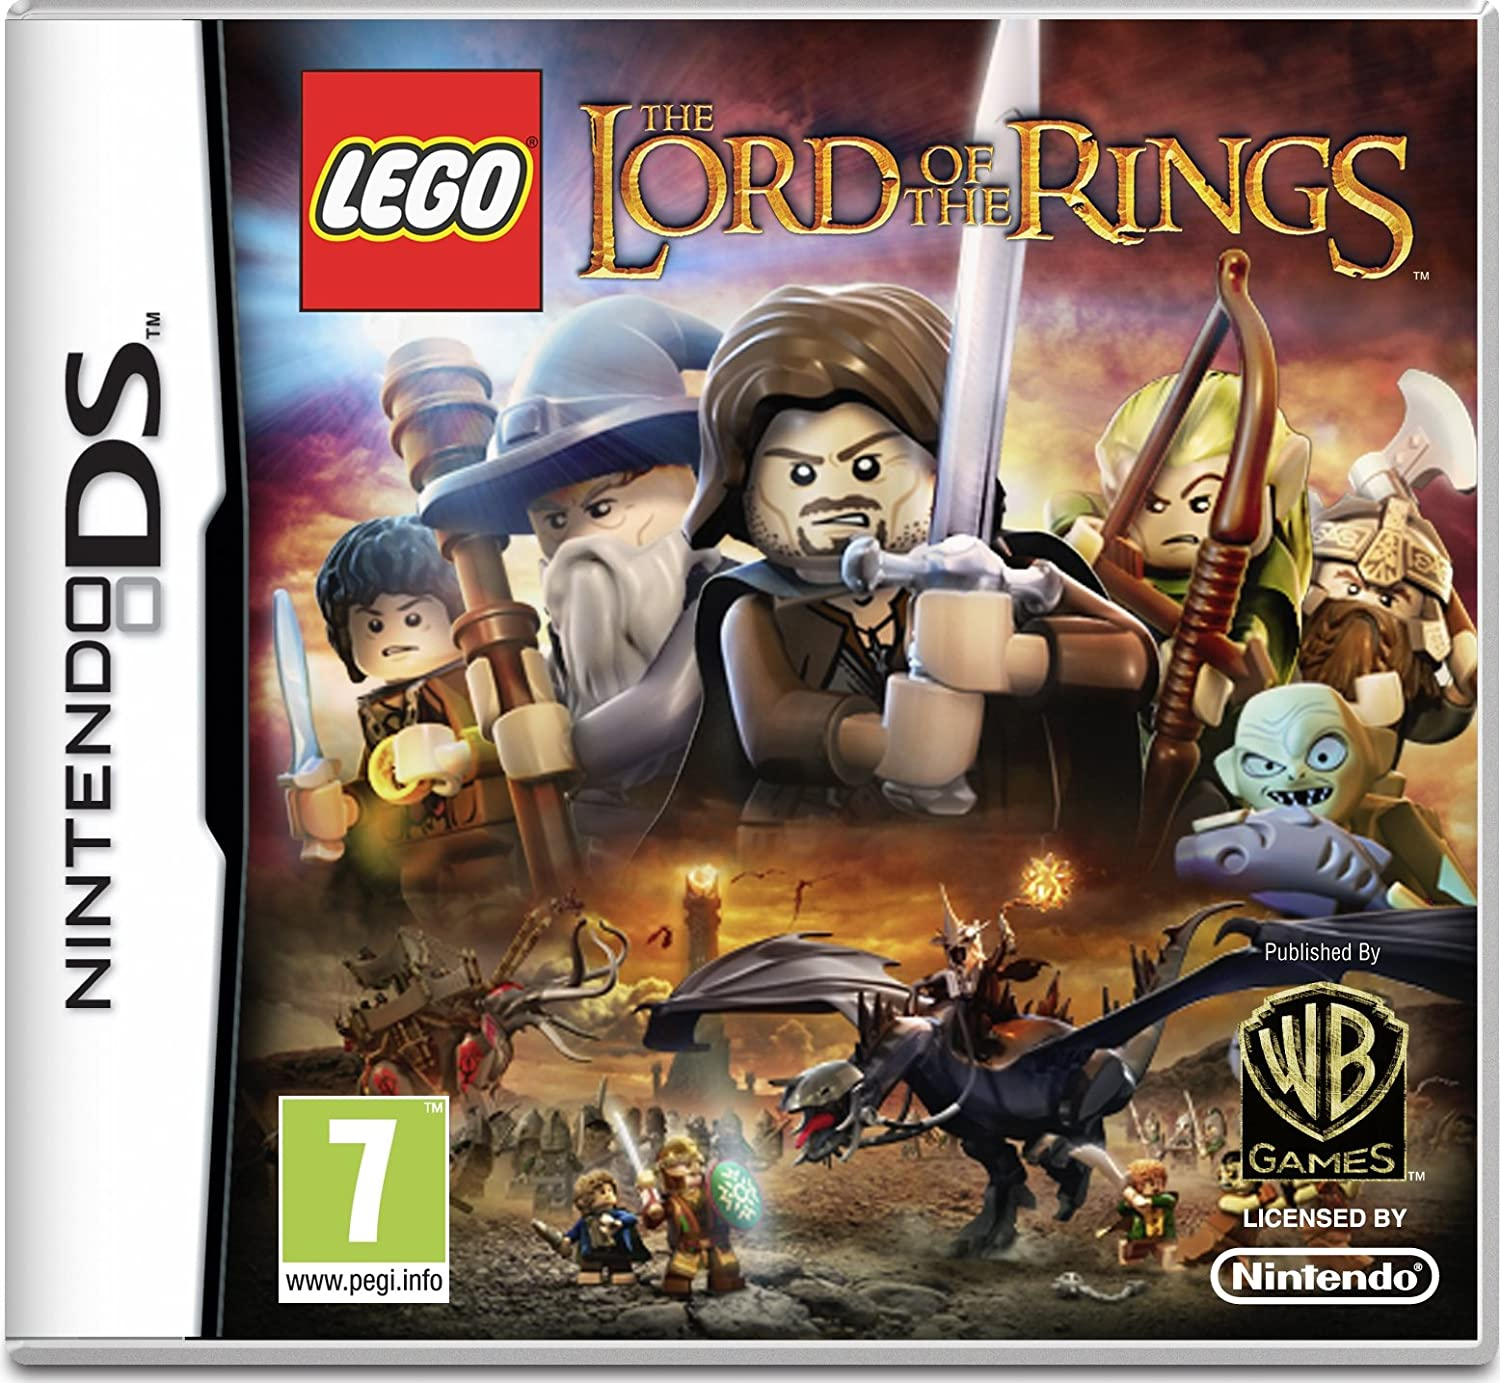 LEGO The Lord of the Rings (Nintendo DS): Amazon.co.uk: PC & Video Games